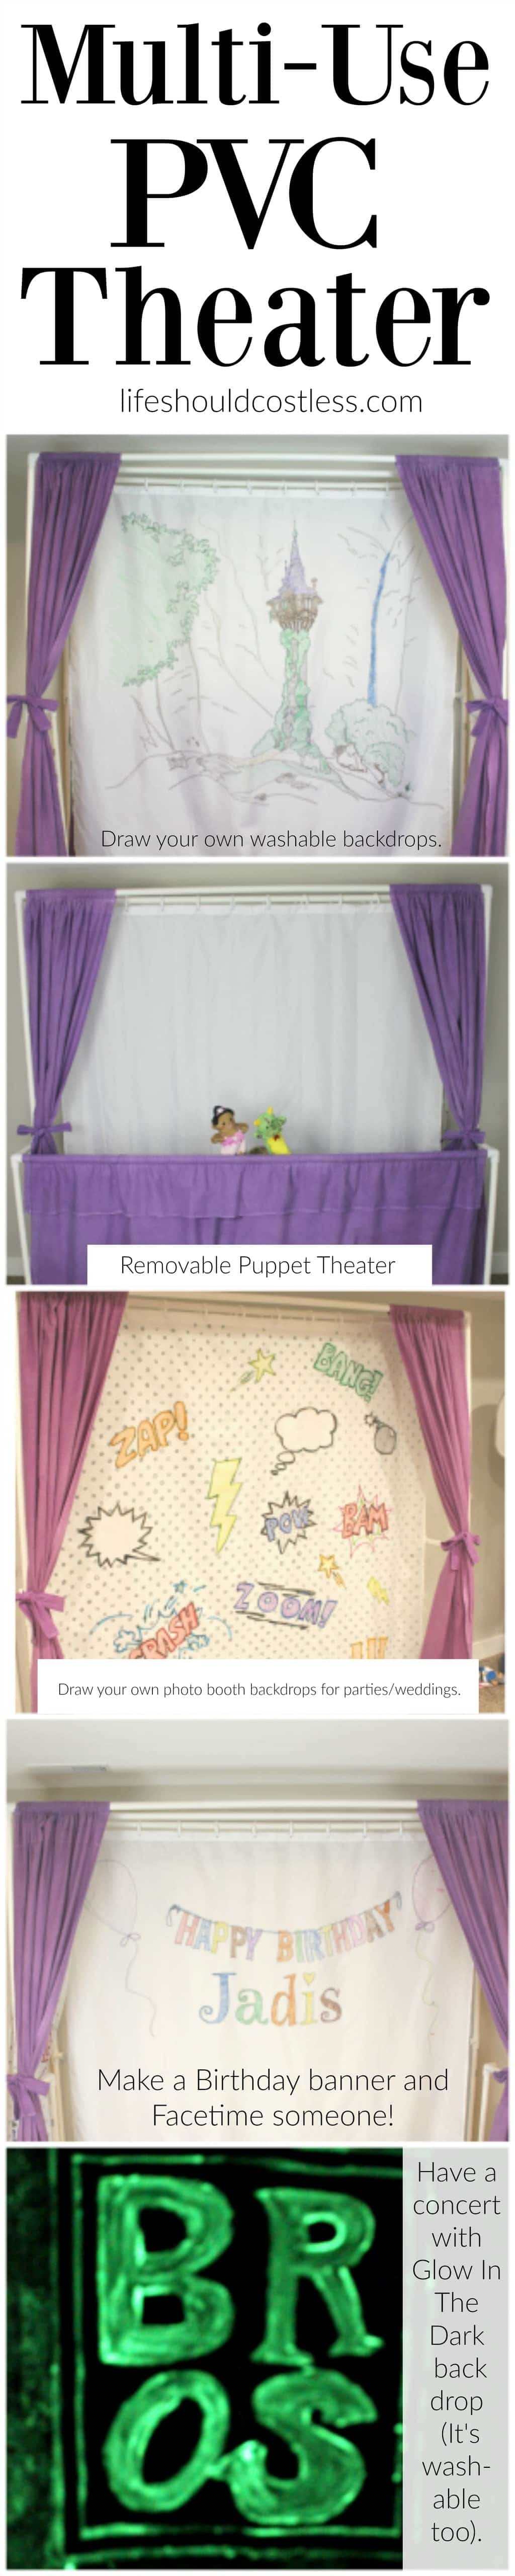 Multi-Use PVC Theater with washable and glow-in-the-dark backdrop options.